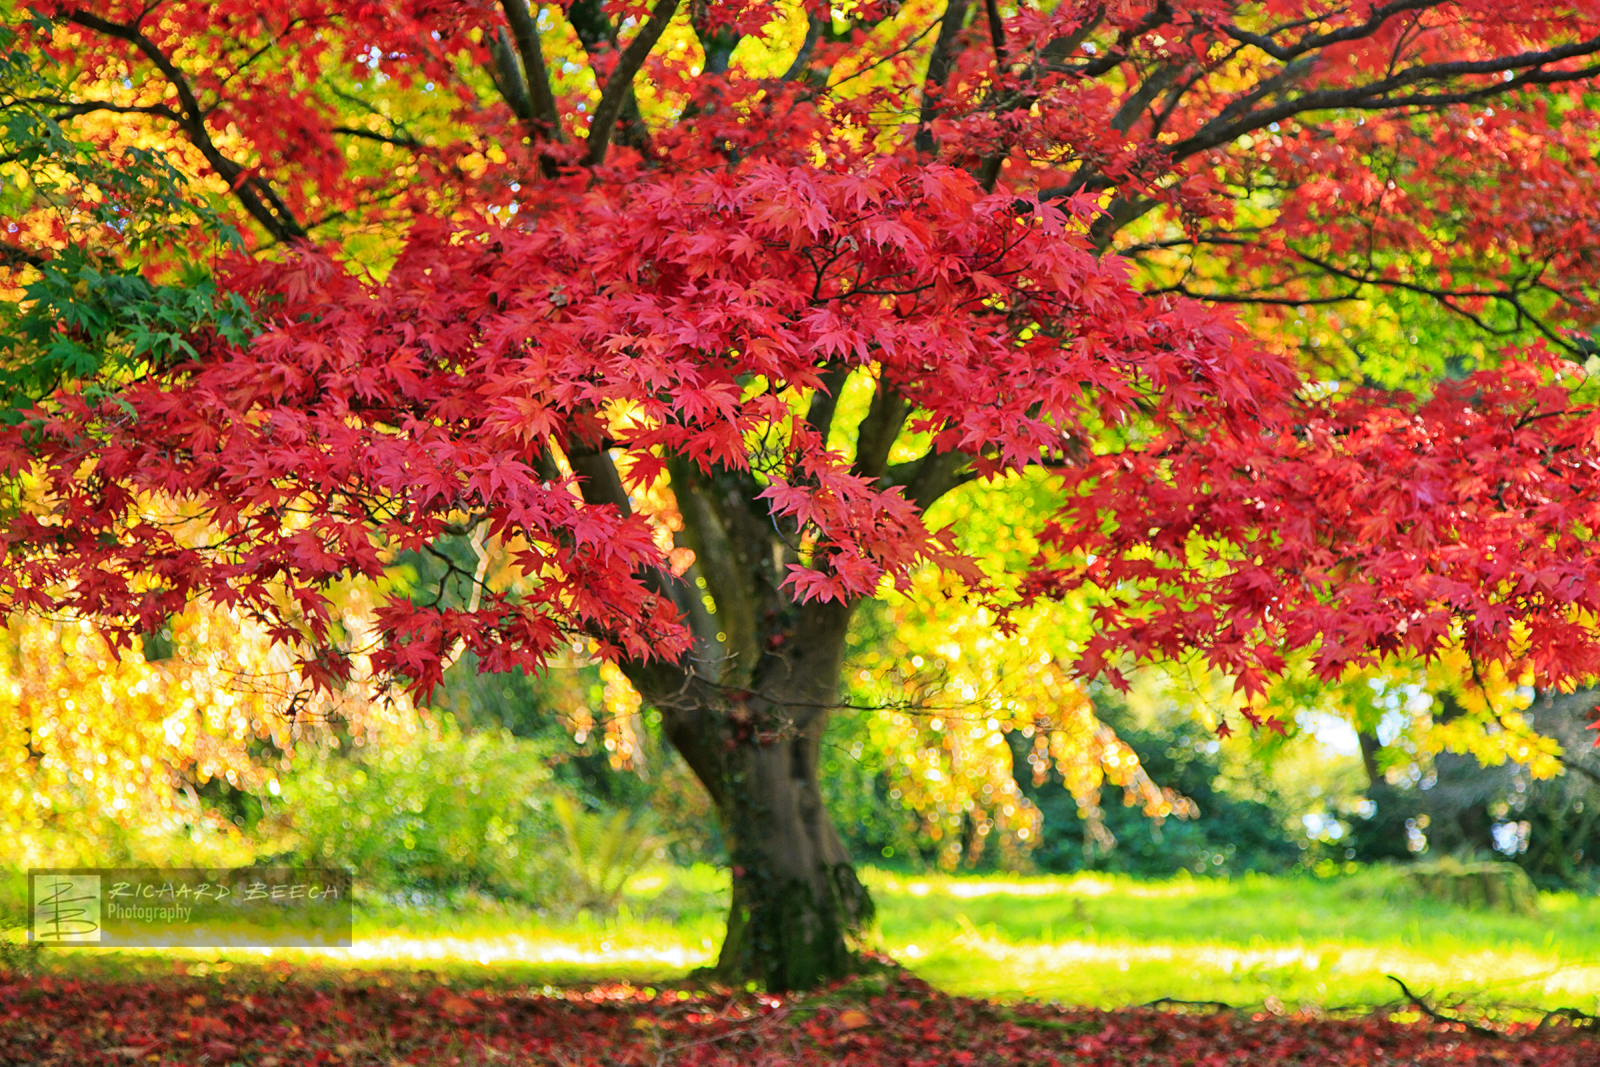 Under the Red Tree, Minterne